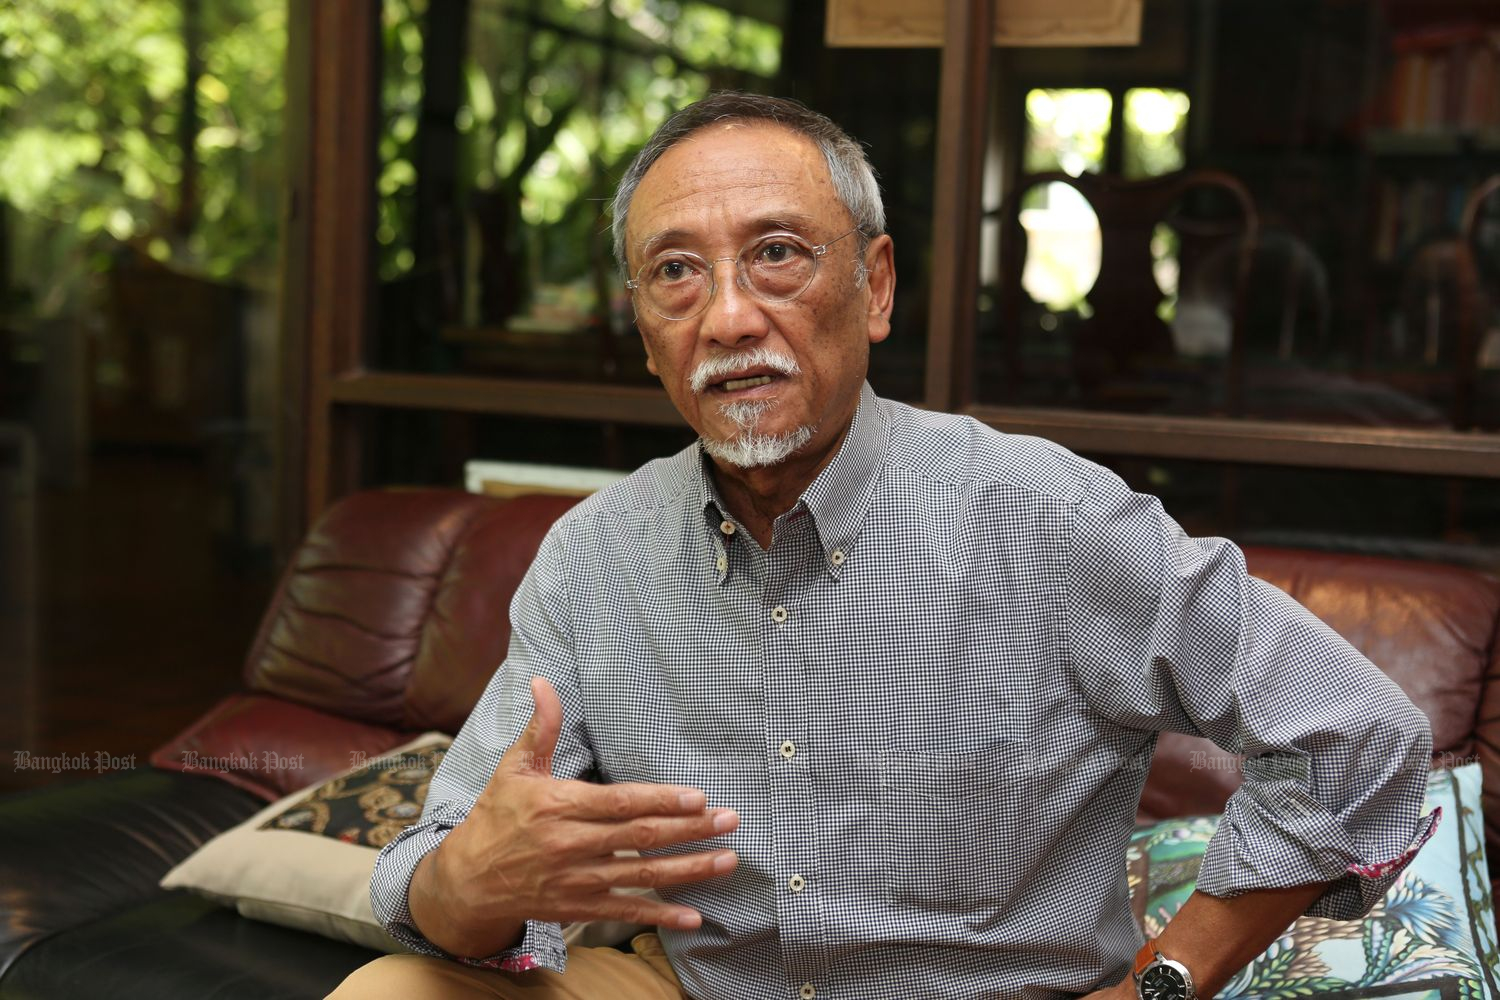 Kraisak Choonhavan gives an interview with the Bangkok Post in 2015. (Bangkok Post file photo)